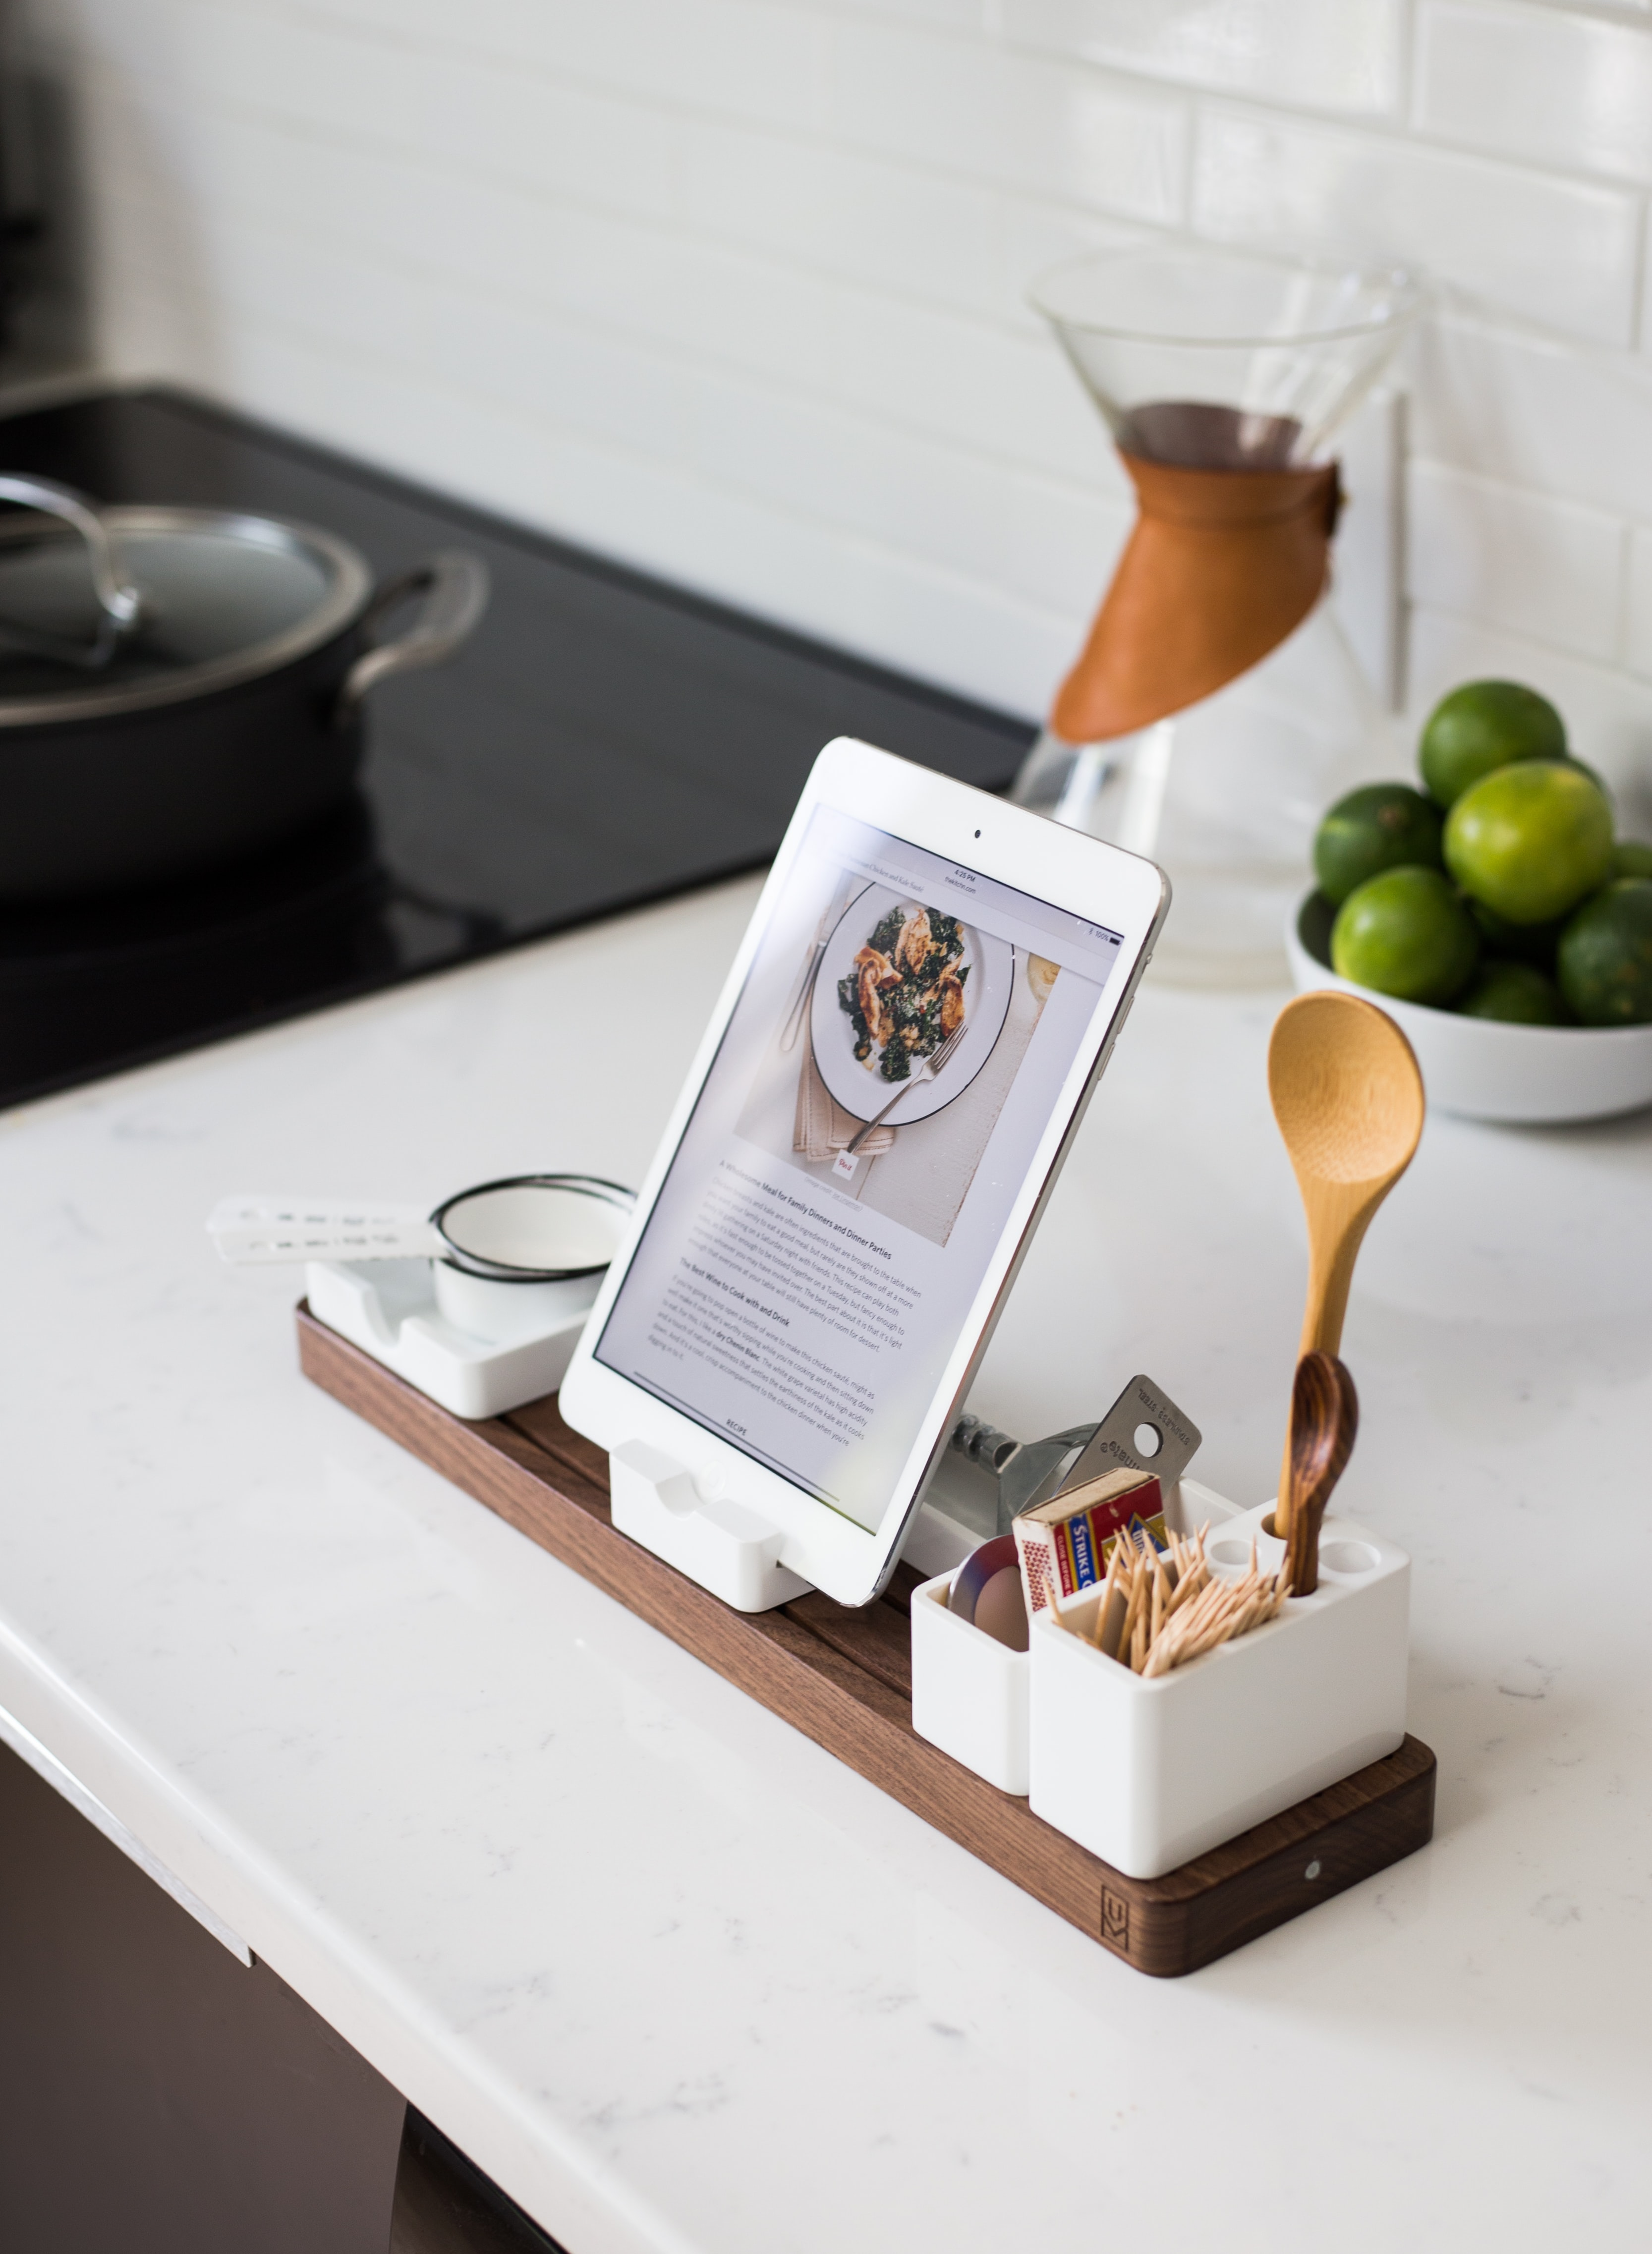 An iPad in a dock surrounded with kitchen utensils in a kitchen